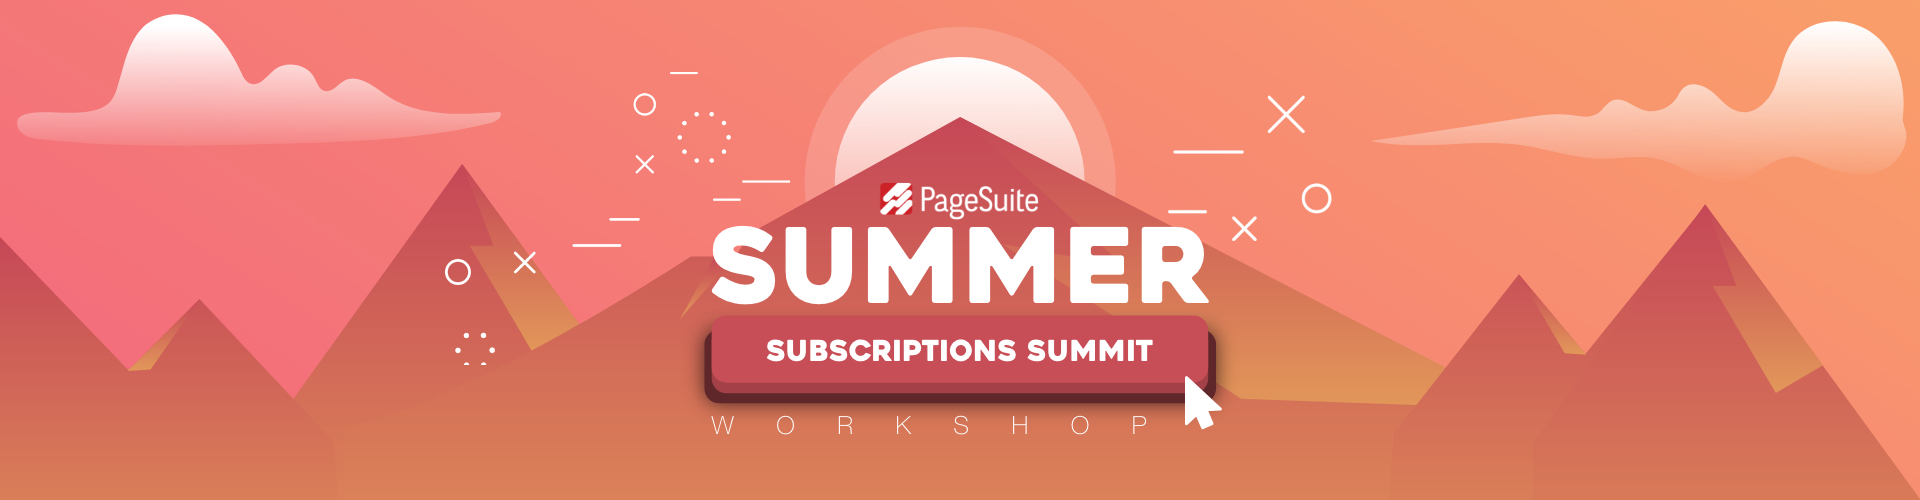 Image of PageSuite's Summer Subscriptions Summit